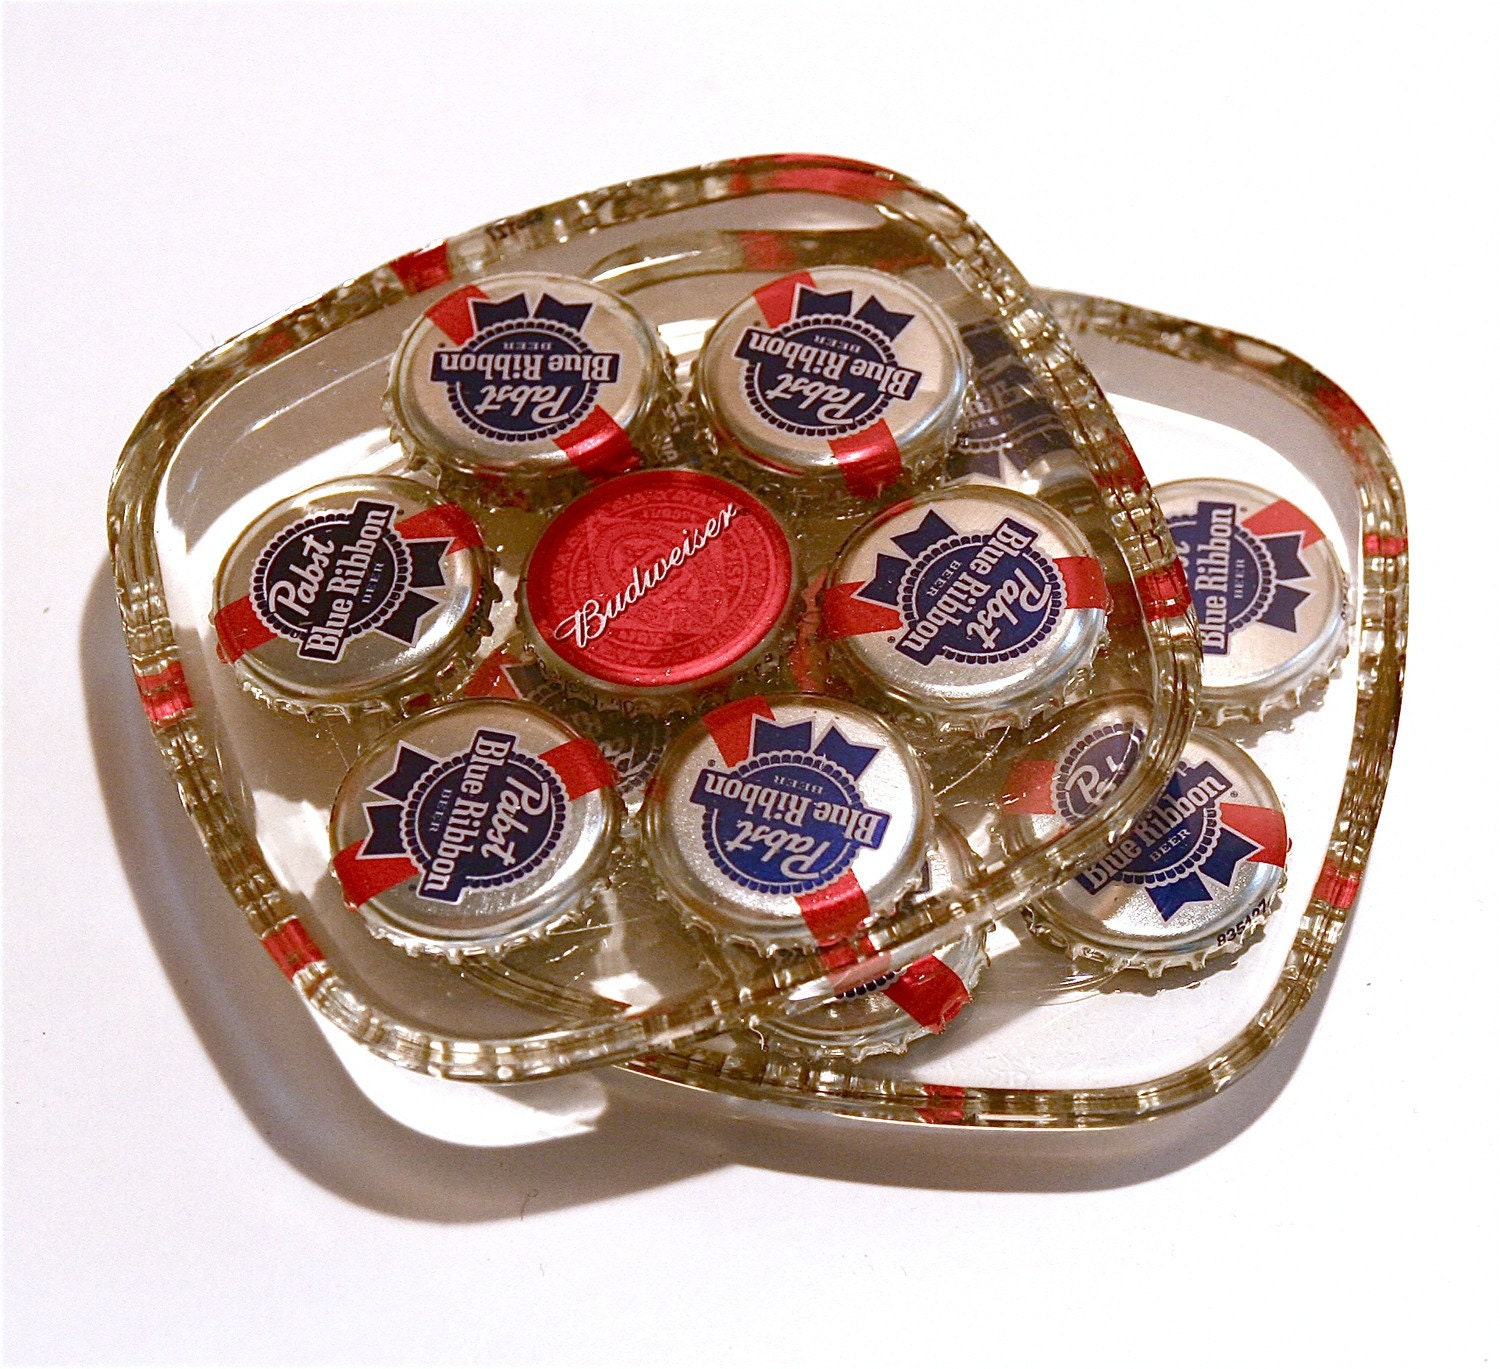 Pbr beer bottle cap coasters set of 4 for What to make with beer bottle caps